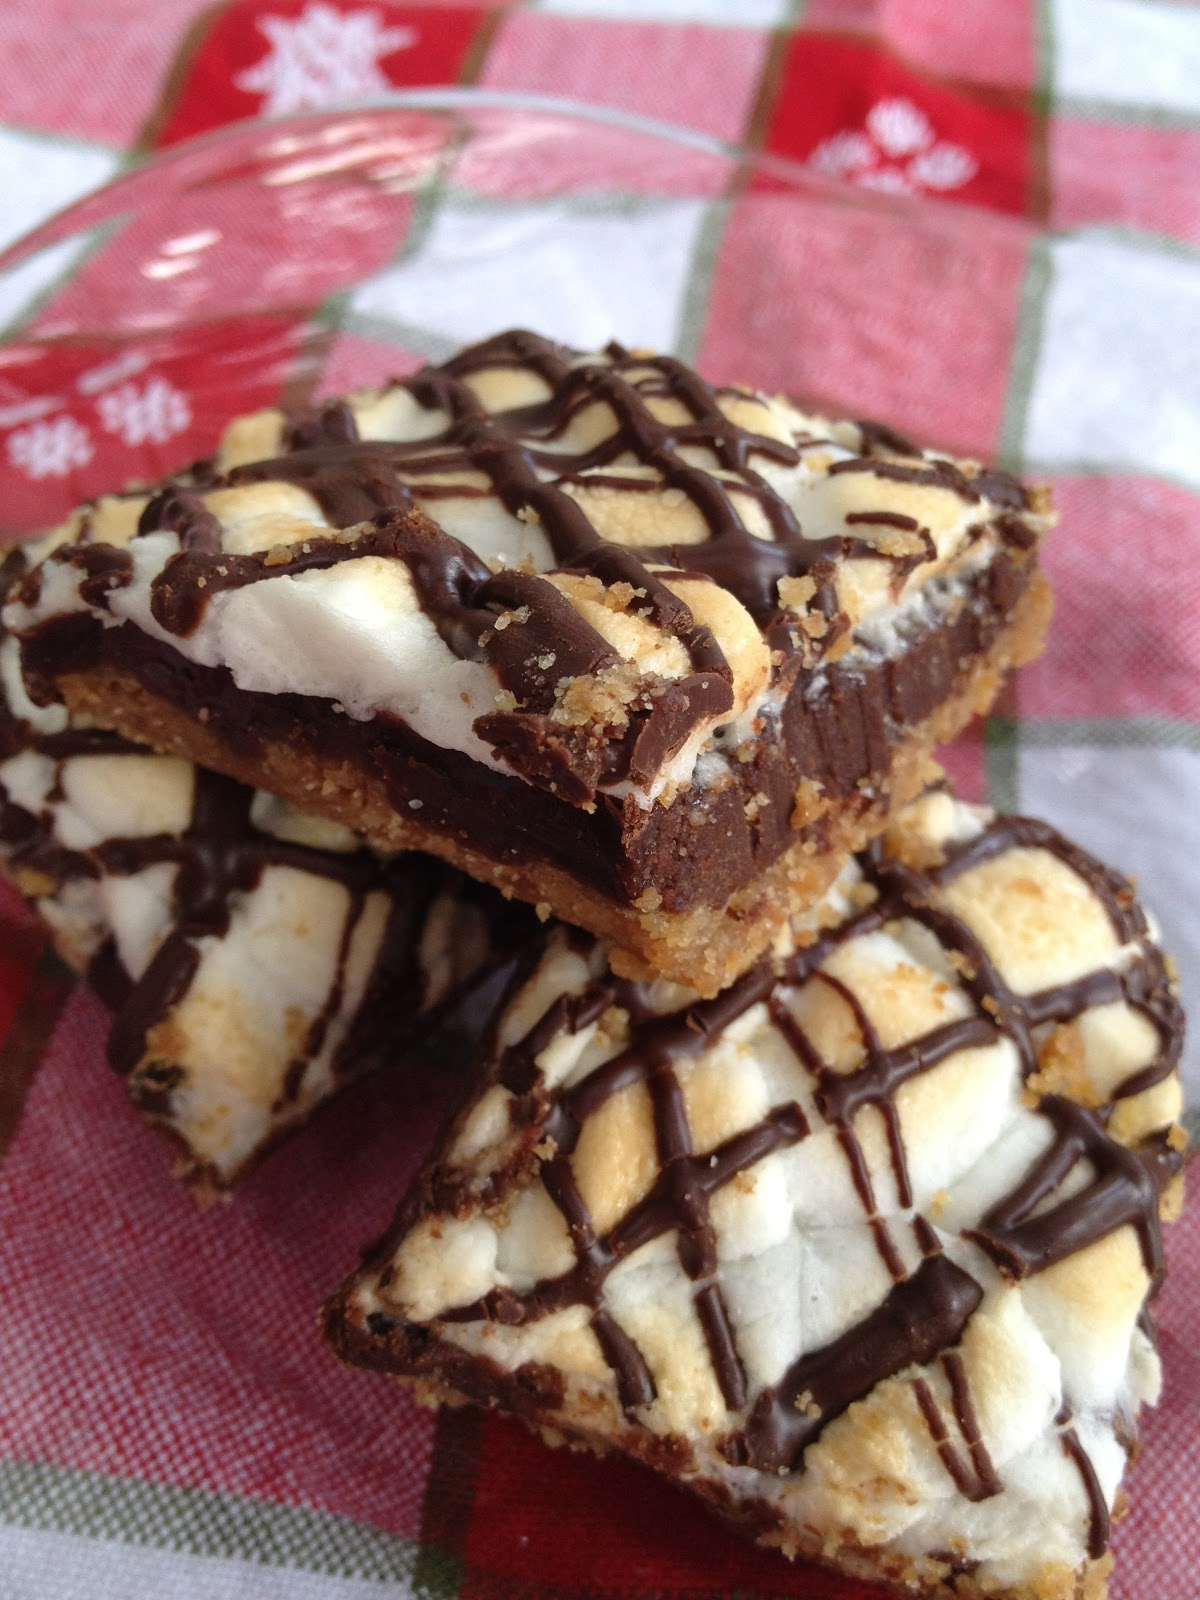 Jennuine by Rook No. 17*: Toasted Marshmallow Summer S'more Bars